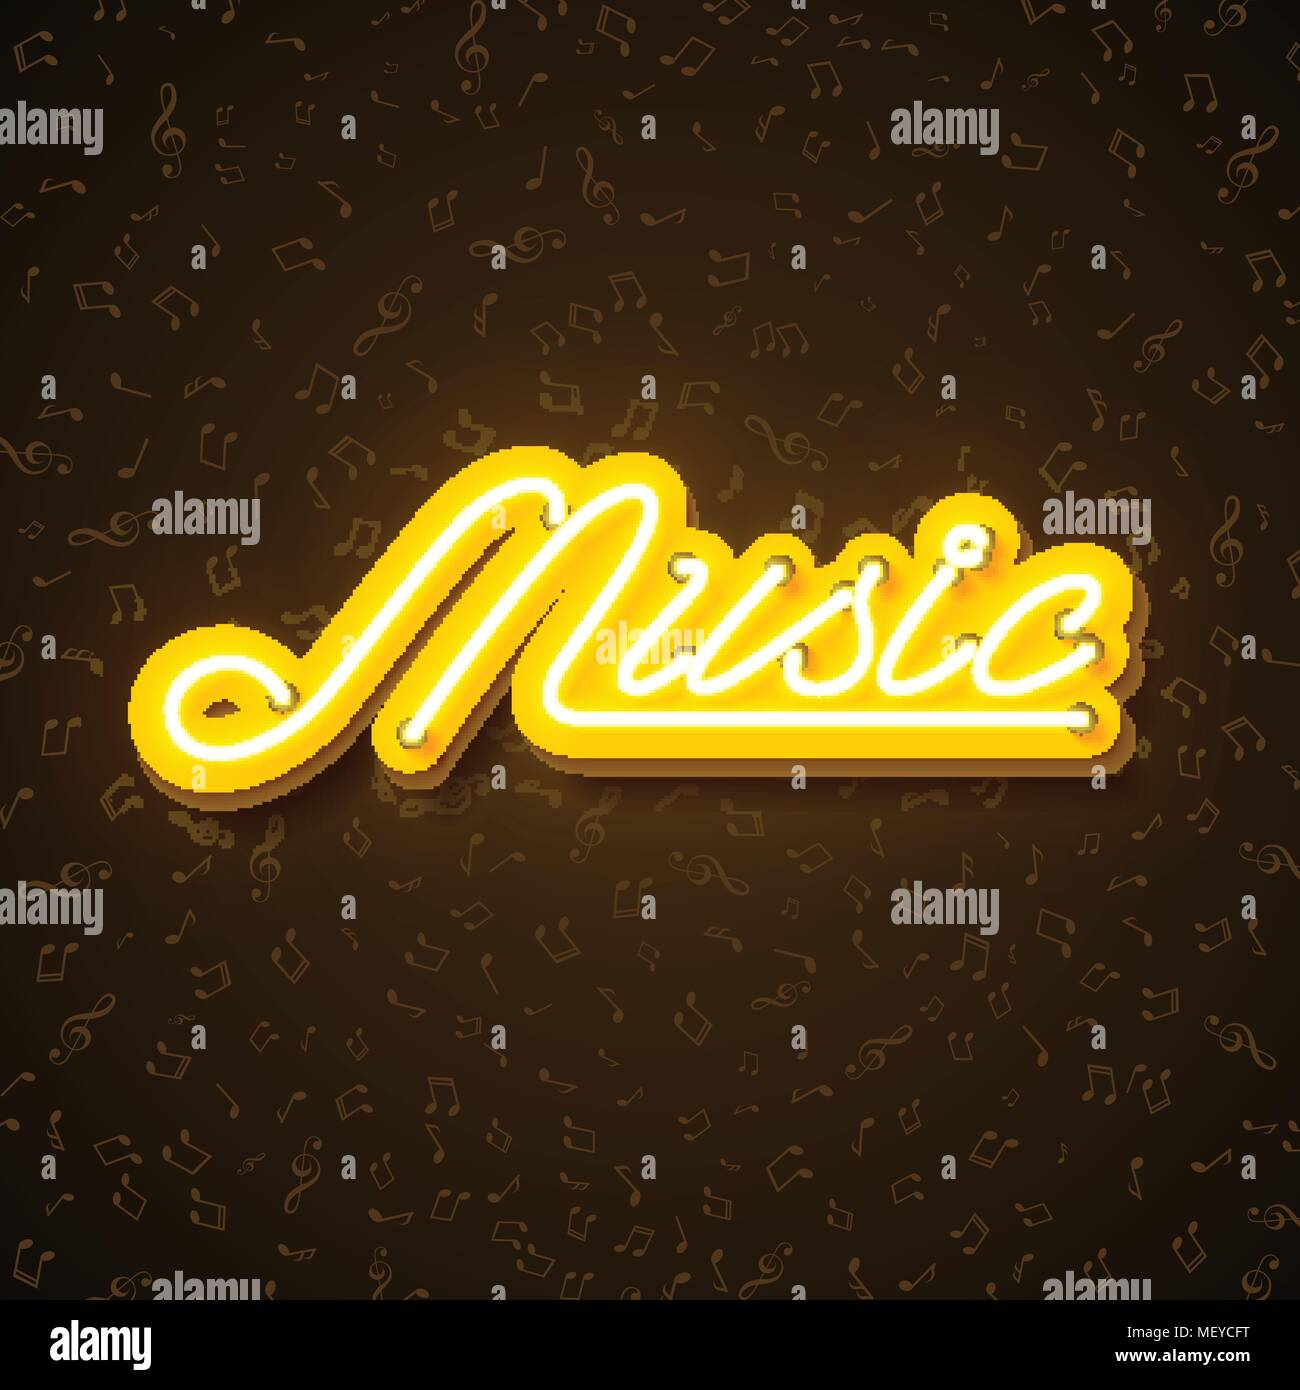 music illustration with neon sign shiny signboard letter on note